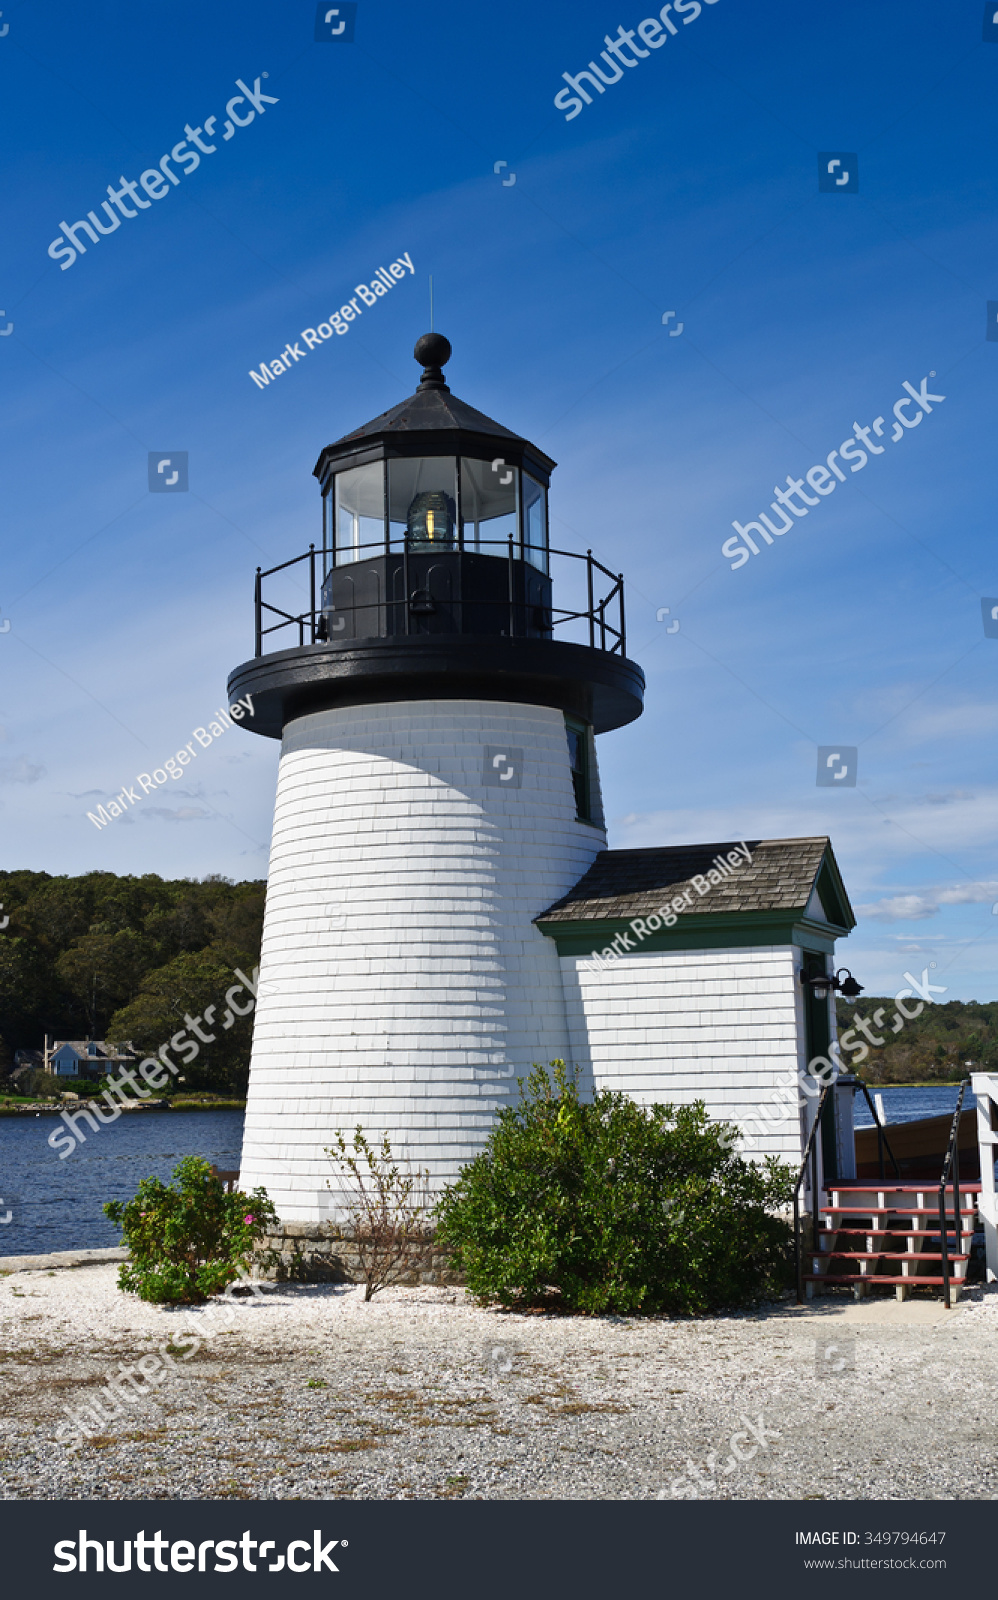 The Mystic Seaport Light Is Modeled After The Brant Point Light In  Nantucket, Massachusetts Pictures Gallery